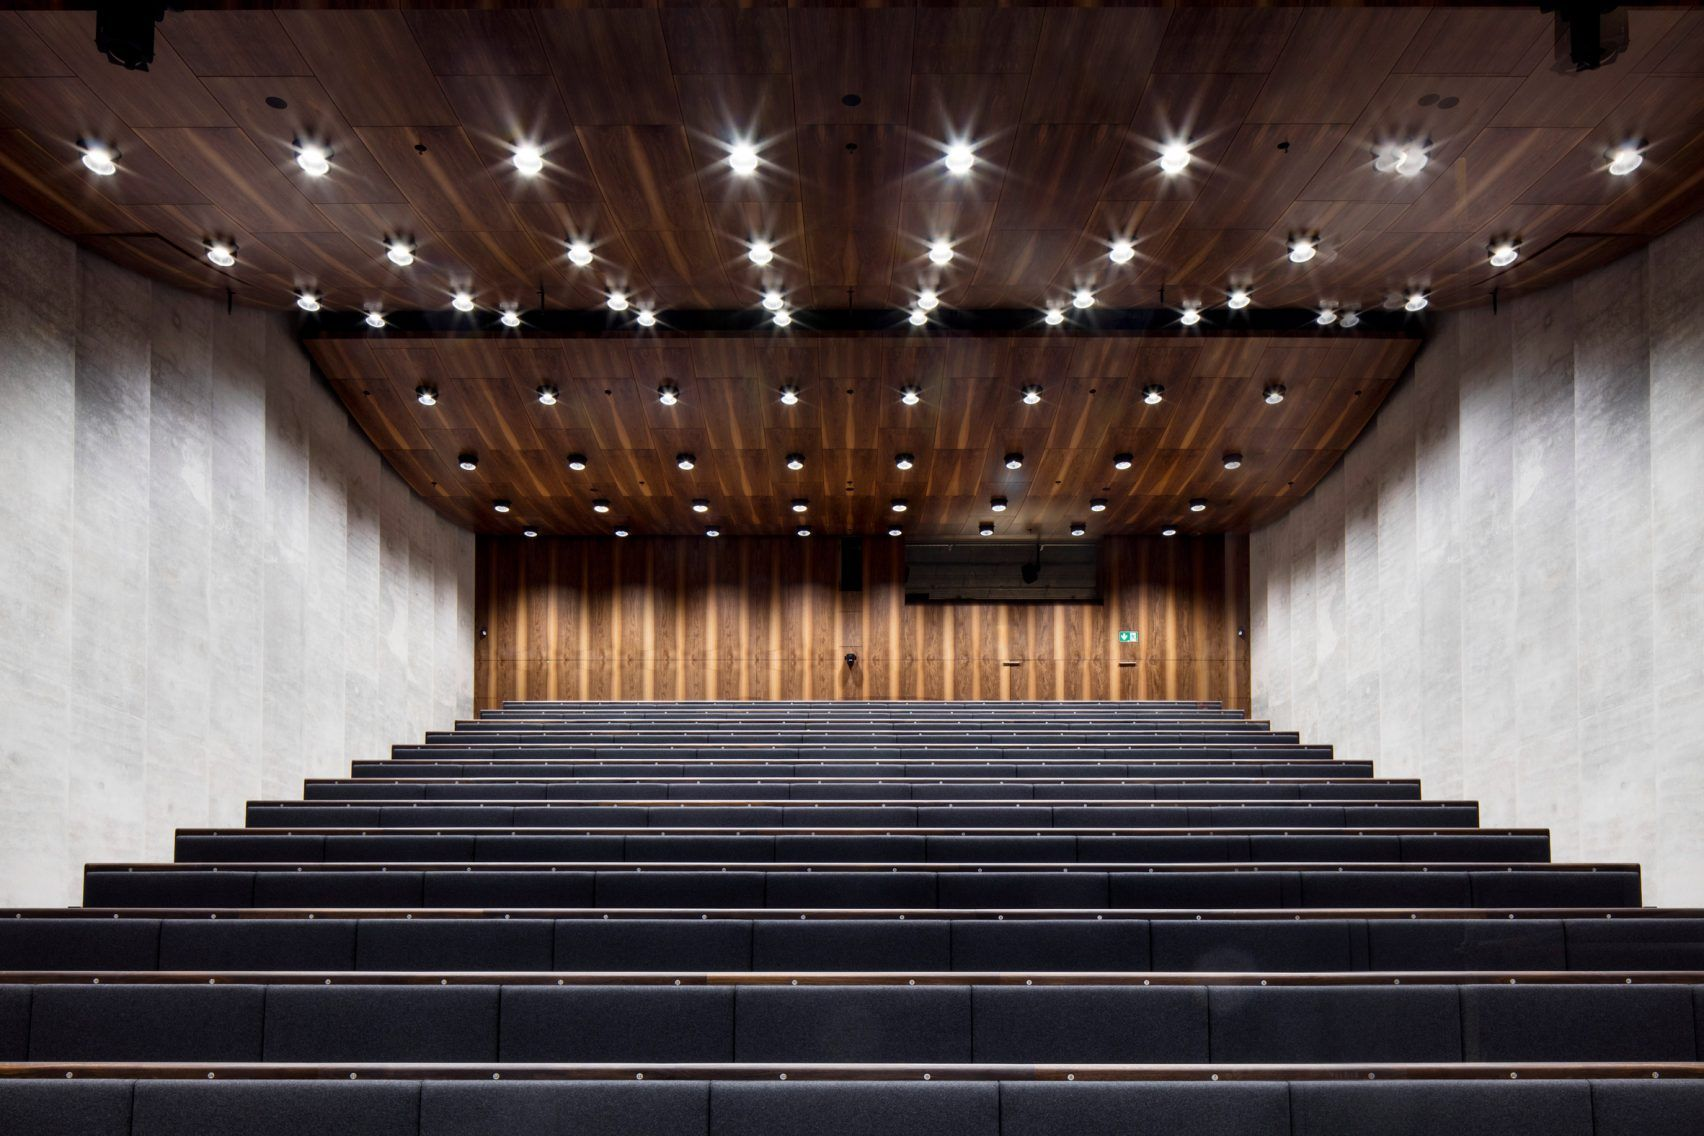 Auditorium Of James Simon Galerie In Berlin By David Chipperfield Architects David Chipperfield Architects Auditorium Design Architect